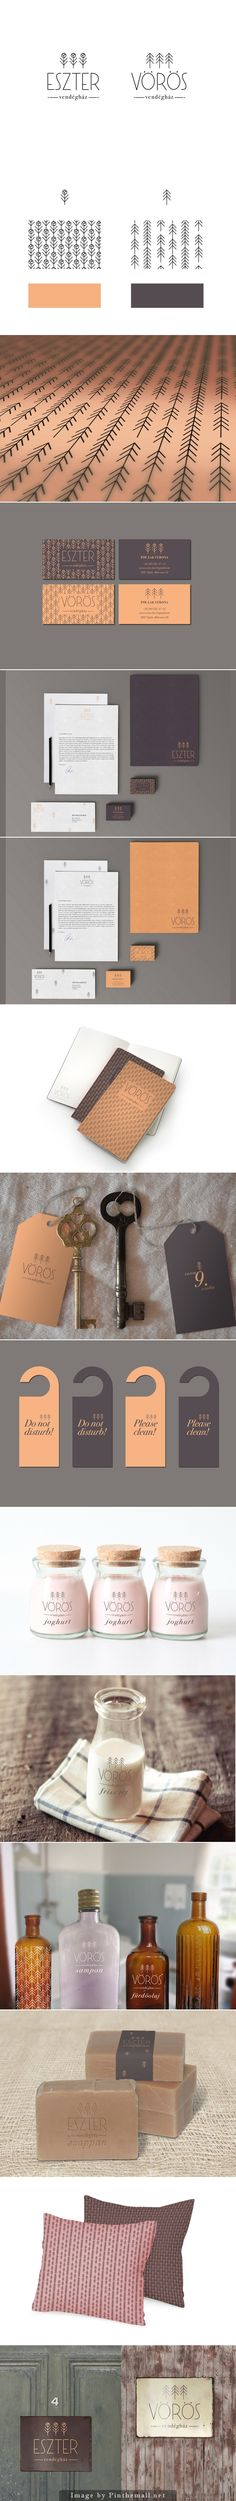 Eszter and Vörös Guesthouse who wouldn't want to stay here | #stationary…